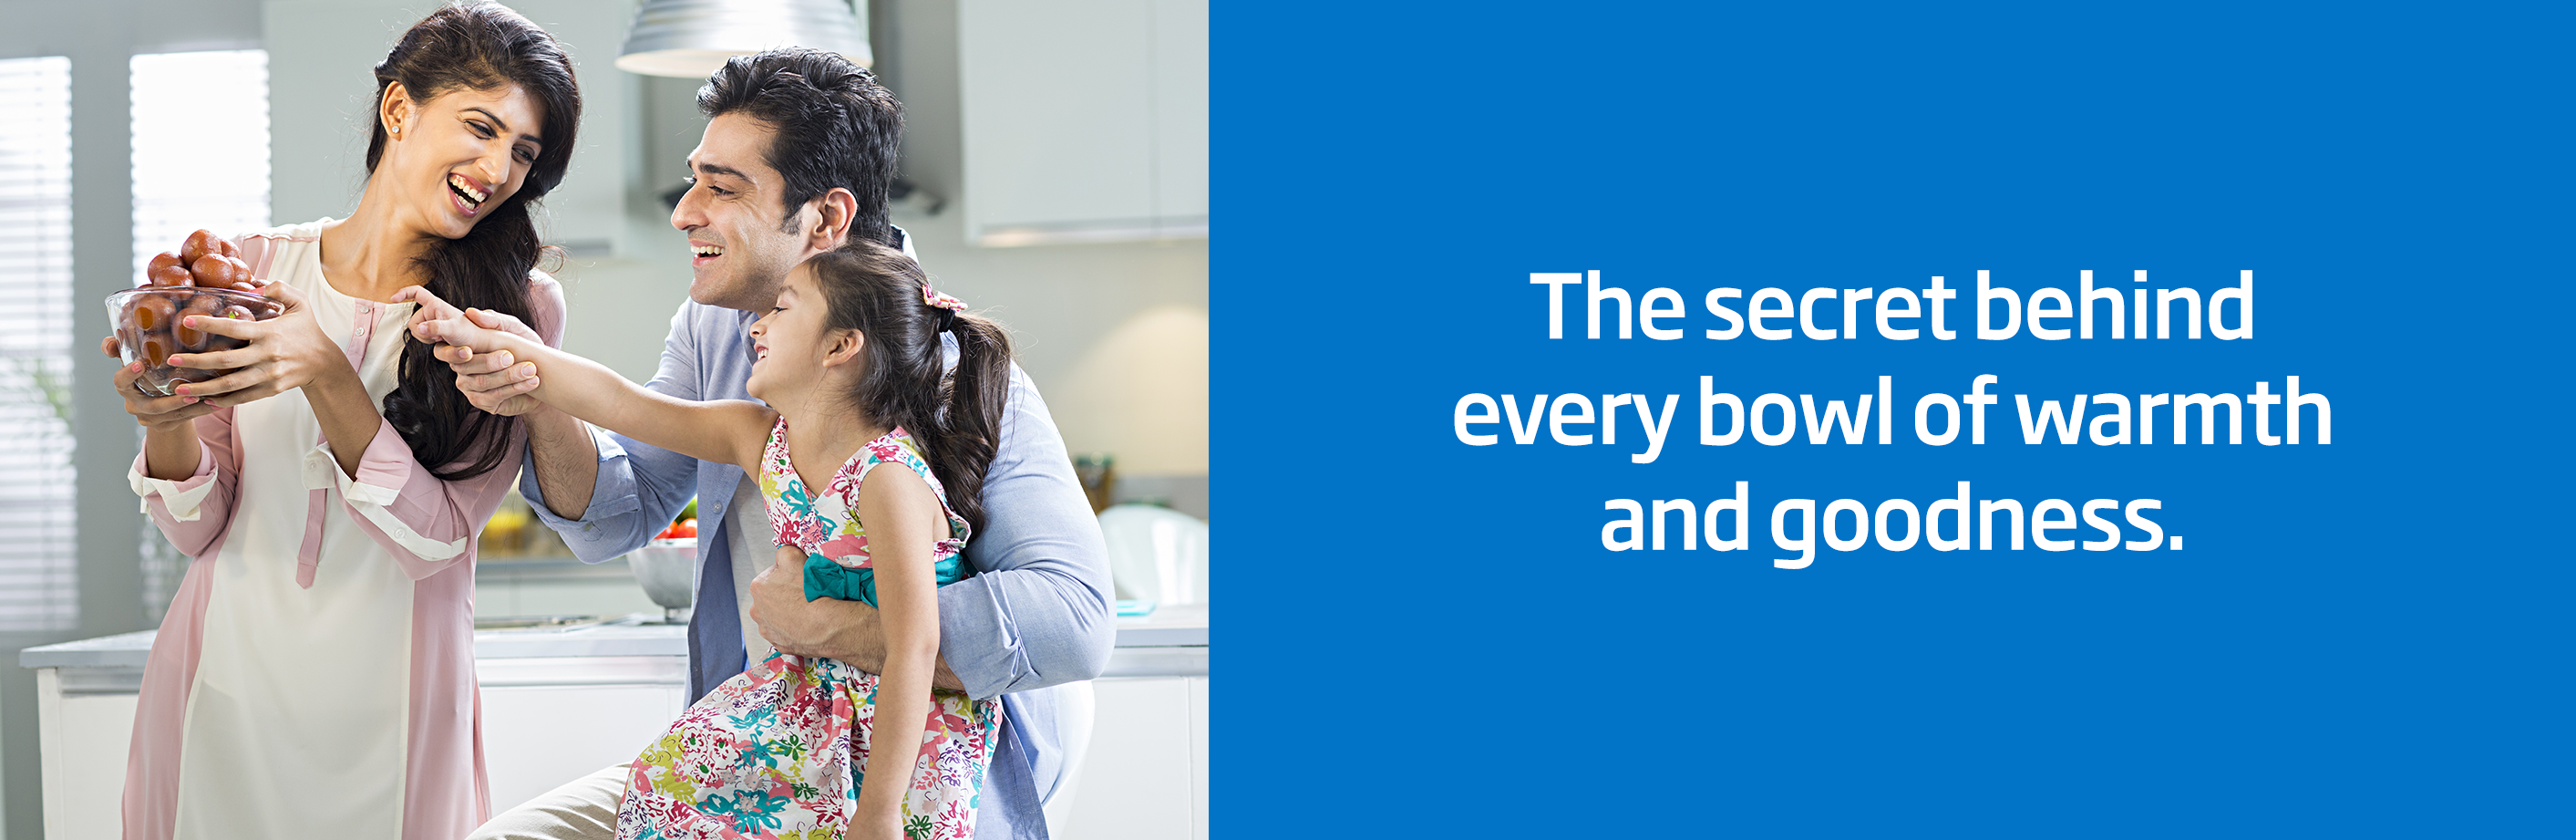 Voltas Beko Microwave Oven - The Secret Behind Every Bowl of Warmth & Goodness